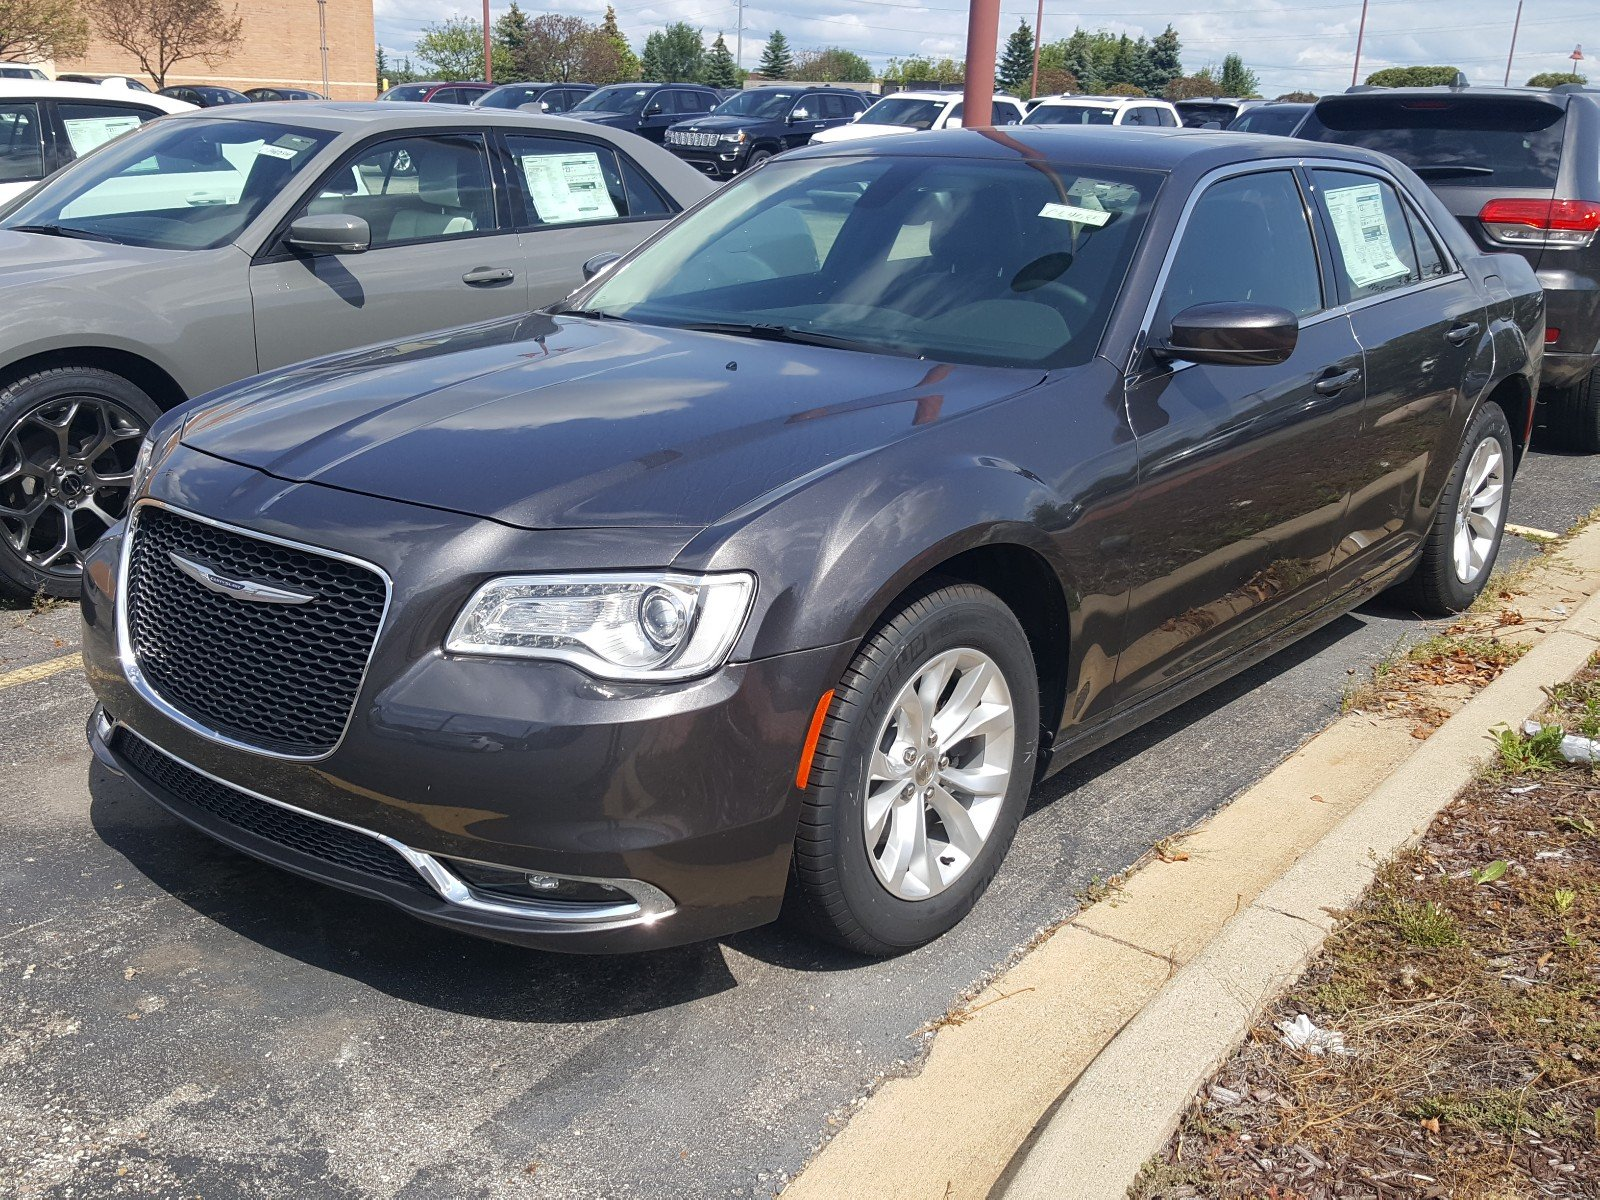 New 2016 CHRYSLER 300 Anniversary Edition